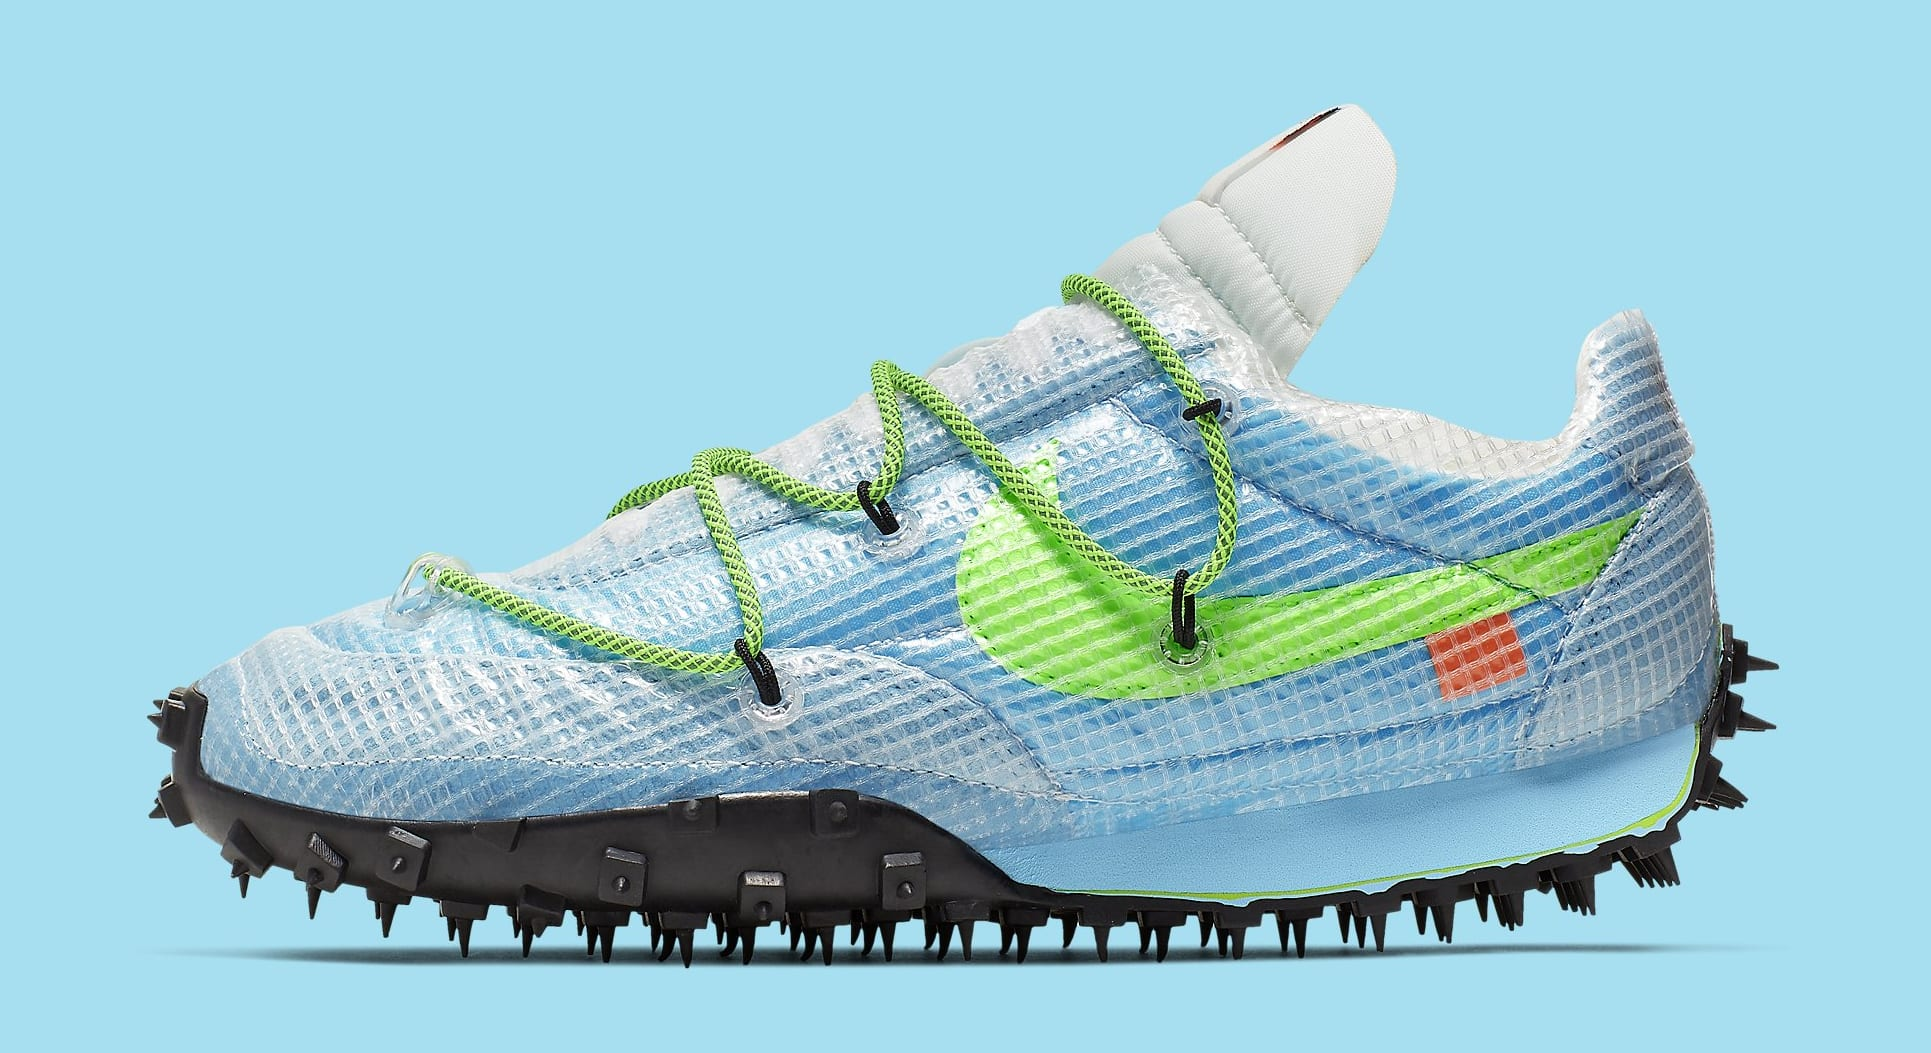 off-white-nike-waffle-racer-womens-vivid-sky-cd8180-400-lateral